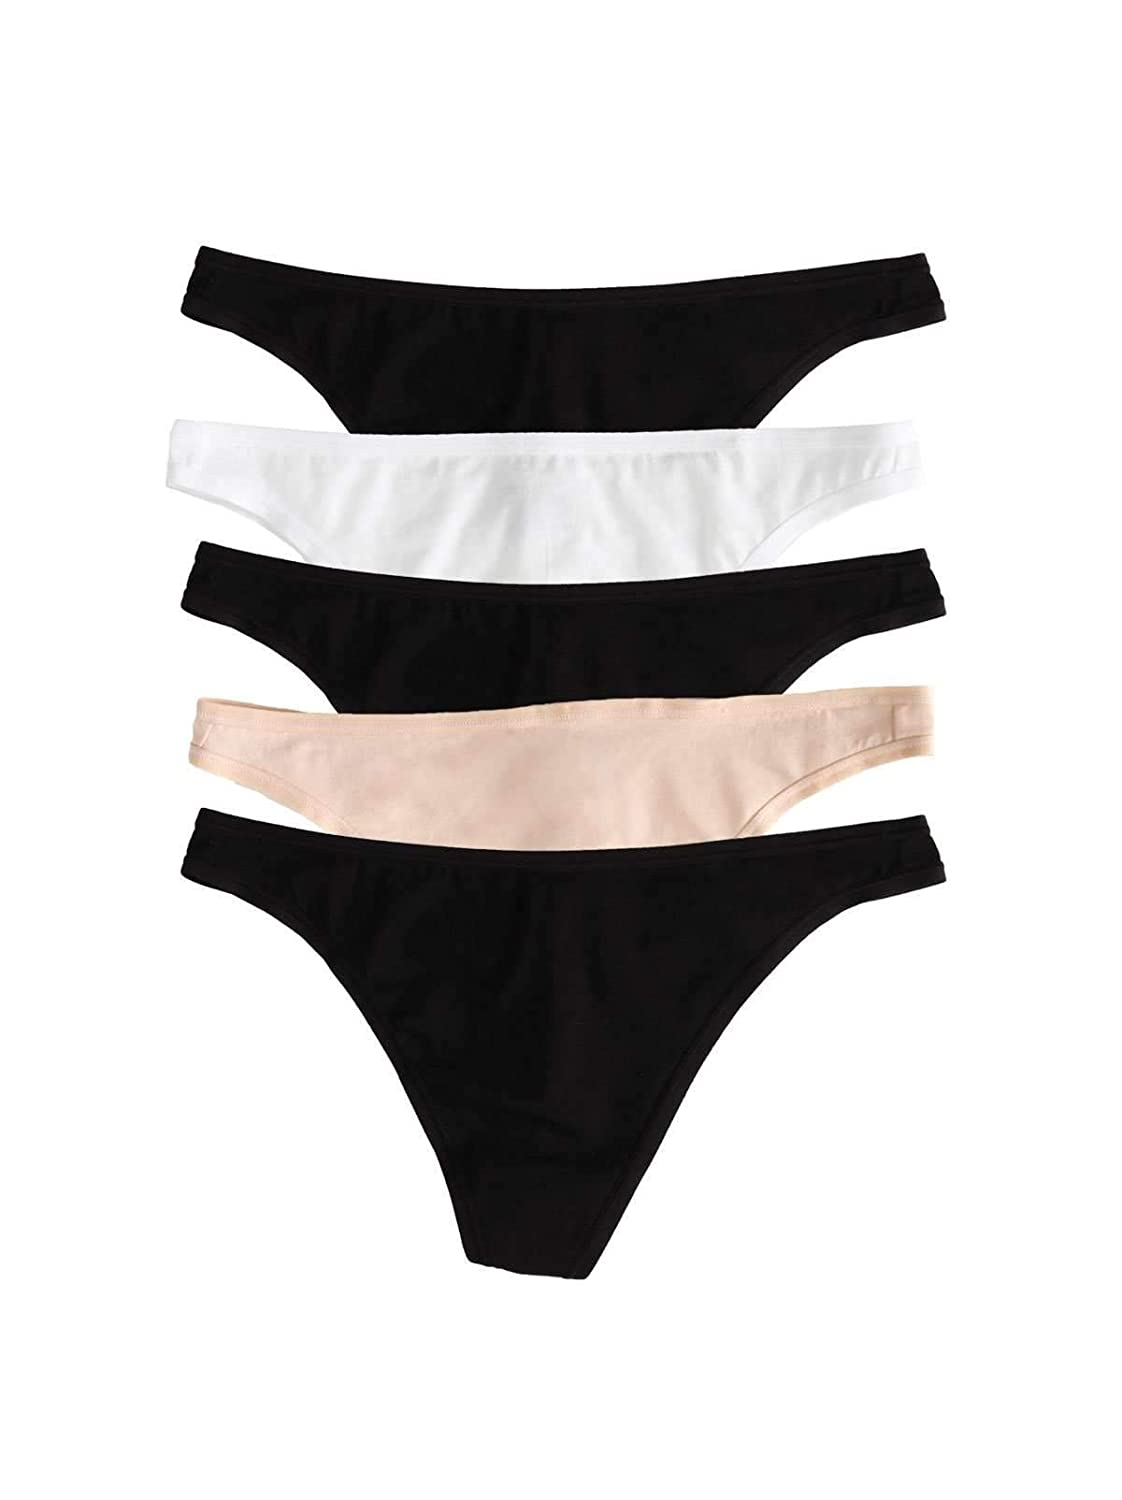 Paramour by Felina Allie Organic Cotton Thong 5-Pack